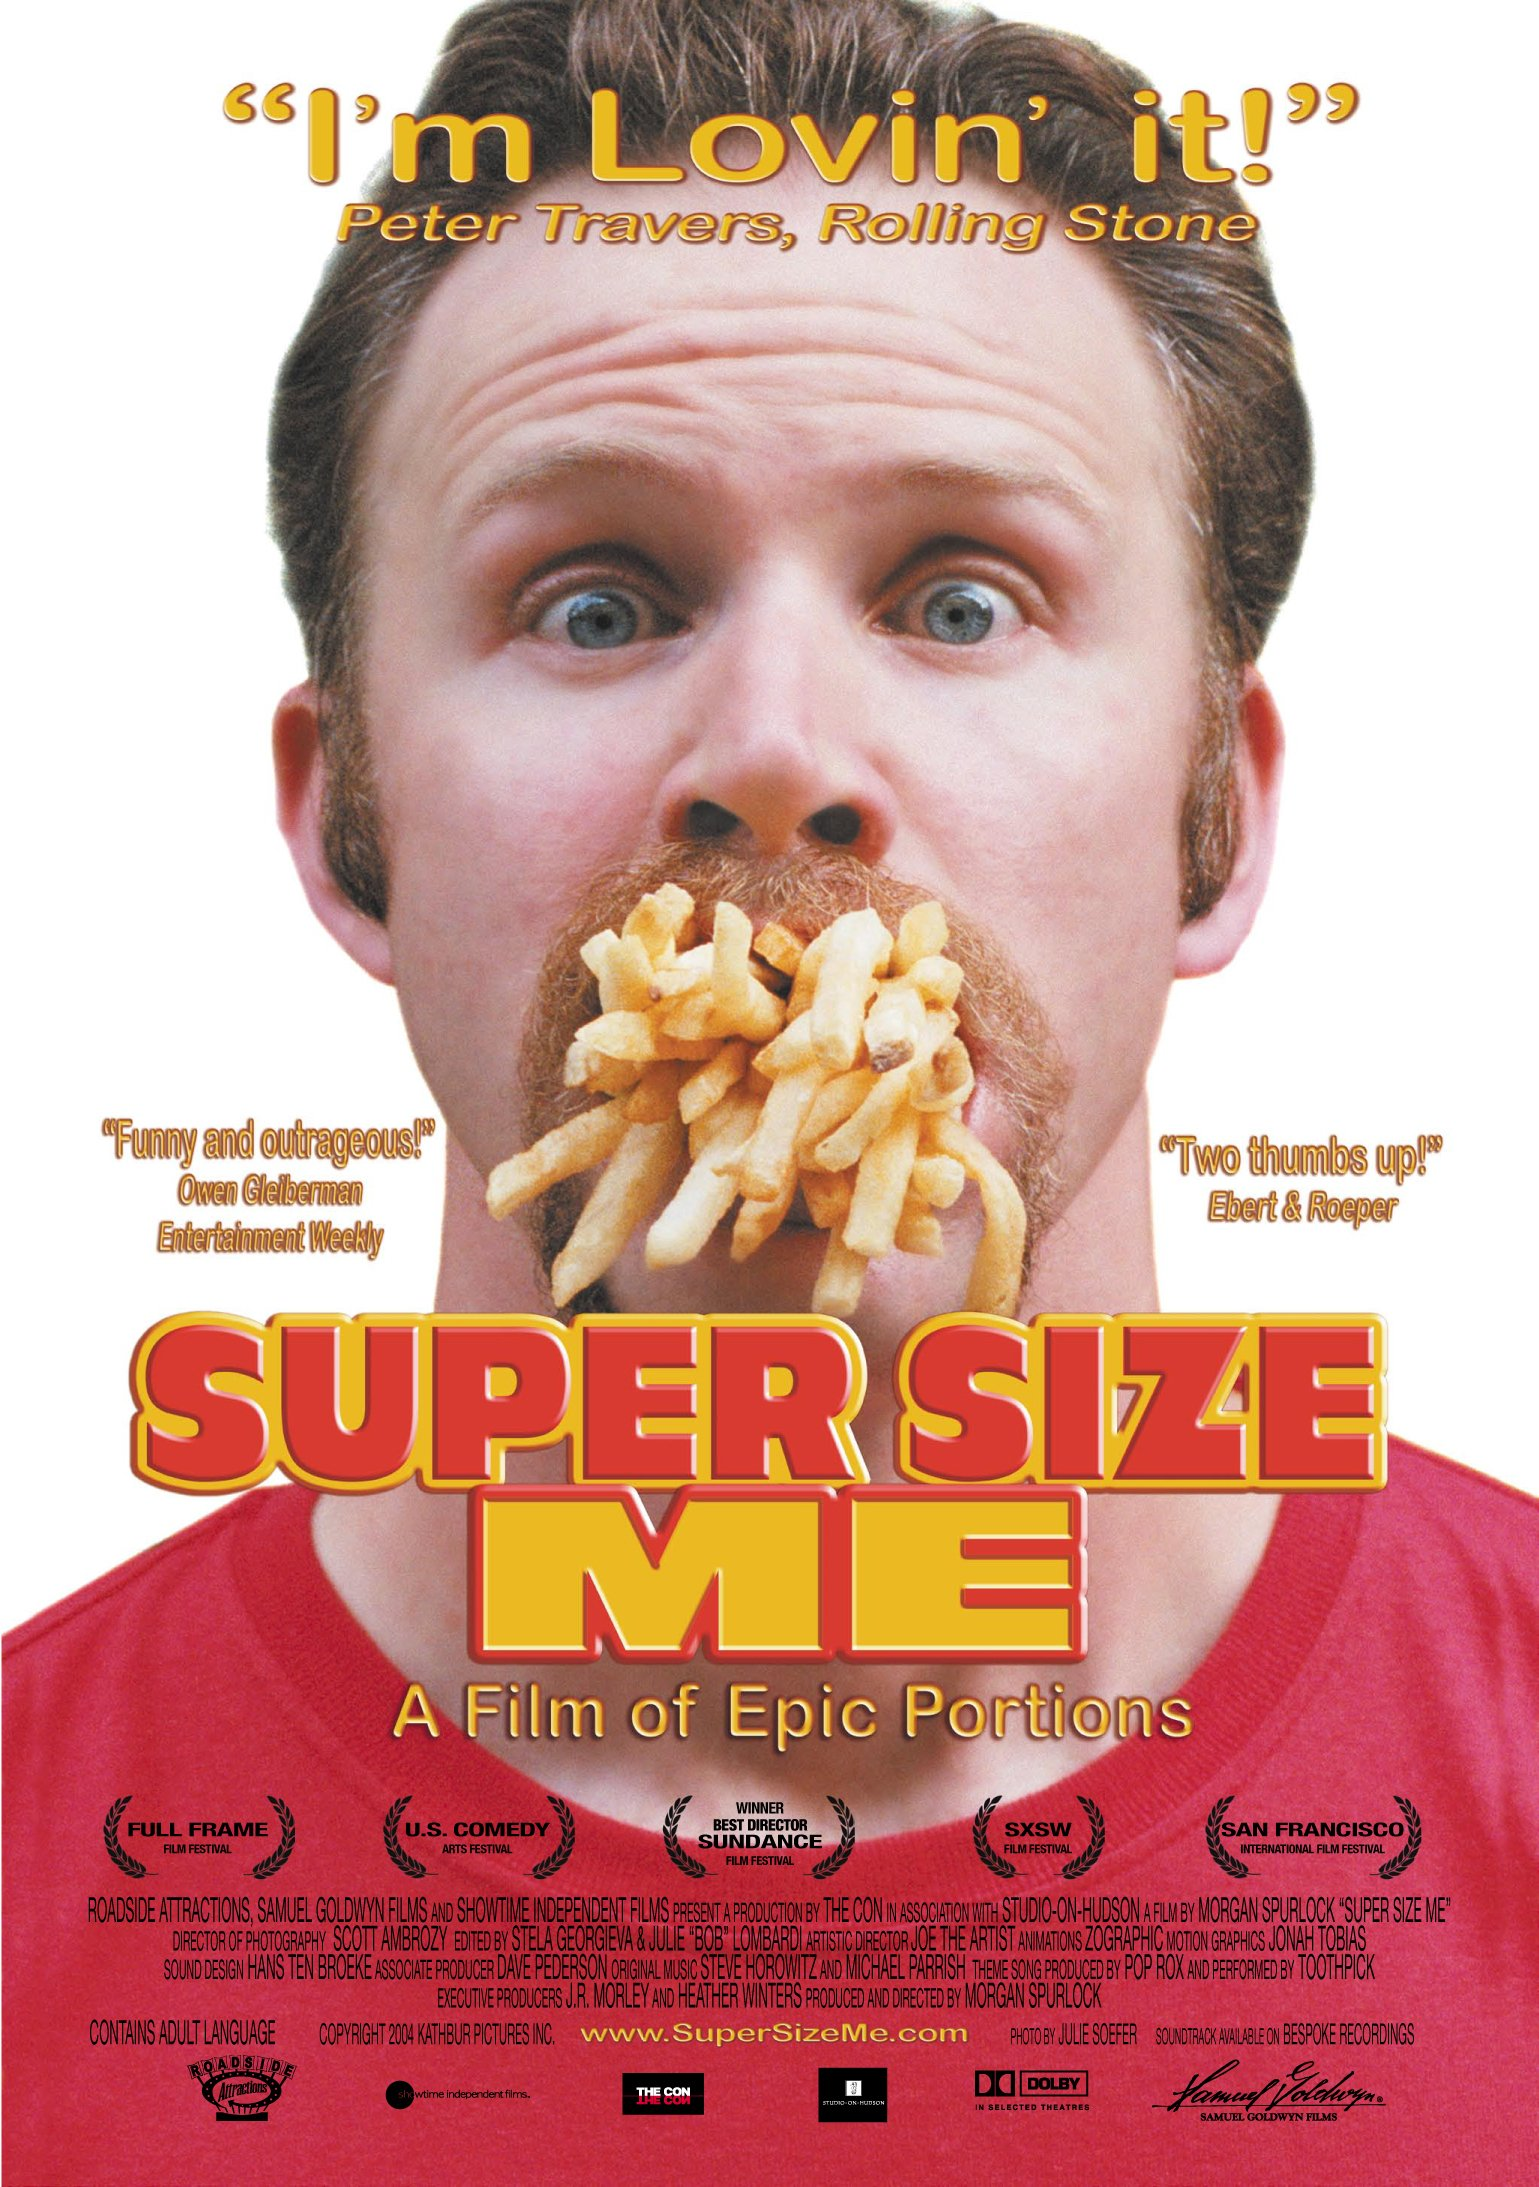 super size me by morgan spurlock essay Super sized essay 30 days of hell super size me (2004) directed by morgan spurlock is a documentary among epic proportions rarely does one come into contact with a film, specifically a documentary that carries as much weight as spurlock's 30-day hellish biopic as told on the silver screen.